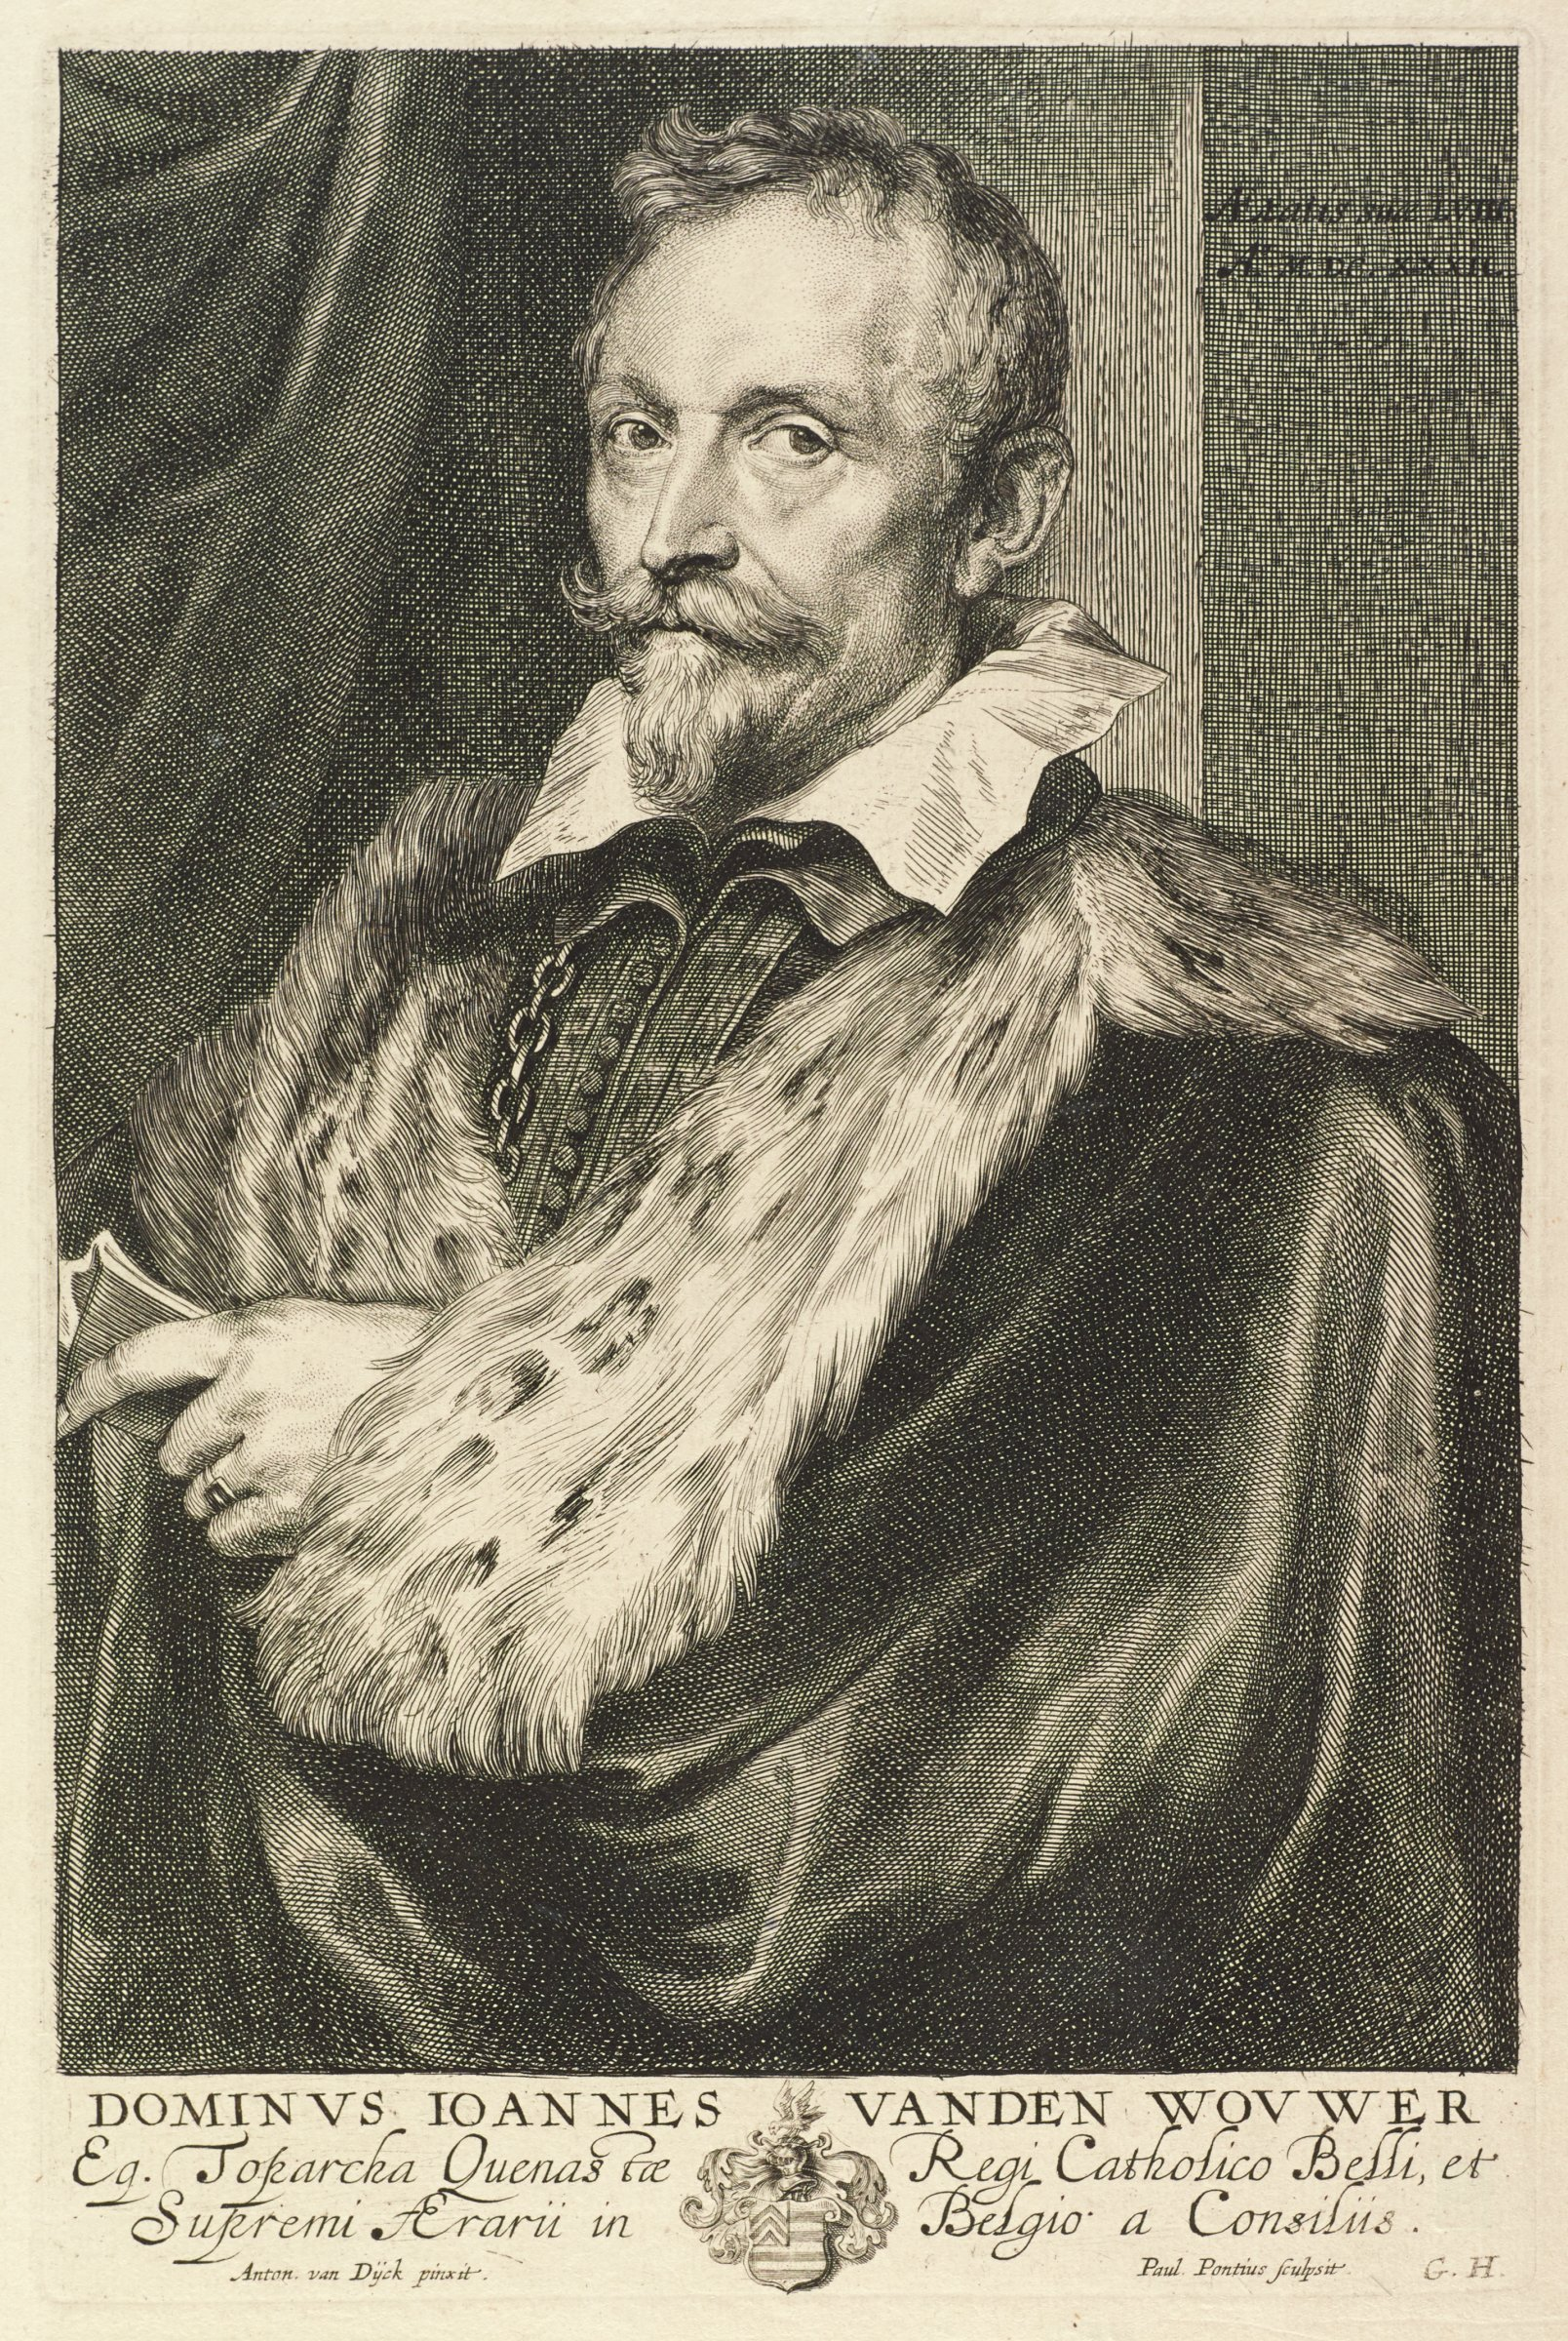 Jan van den Wouwer was a scholar, financial adviser and diplomat. He is seen here in portrait from the waist up, slightly angled to the left, looking out at the viewer. He wears a fur lined cloak that is draped over both shoulders and held in his left hand. He stands infront of a swagged curtain on the left. This is from the Gillis Hendricx edition of the Iconography (Icones Principum Virorum Doctorum, Pictorum Chalcographorum Statuorum nec non Amatorum Pictoriae Artis Numero Centum), made between 1632-44.